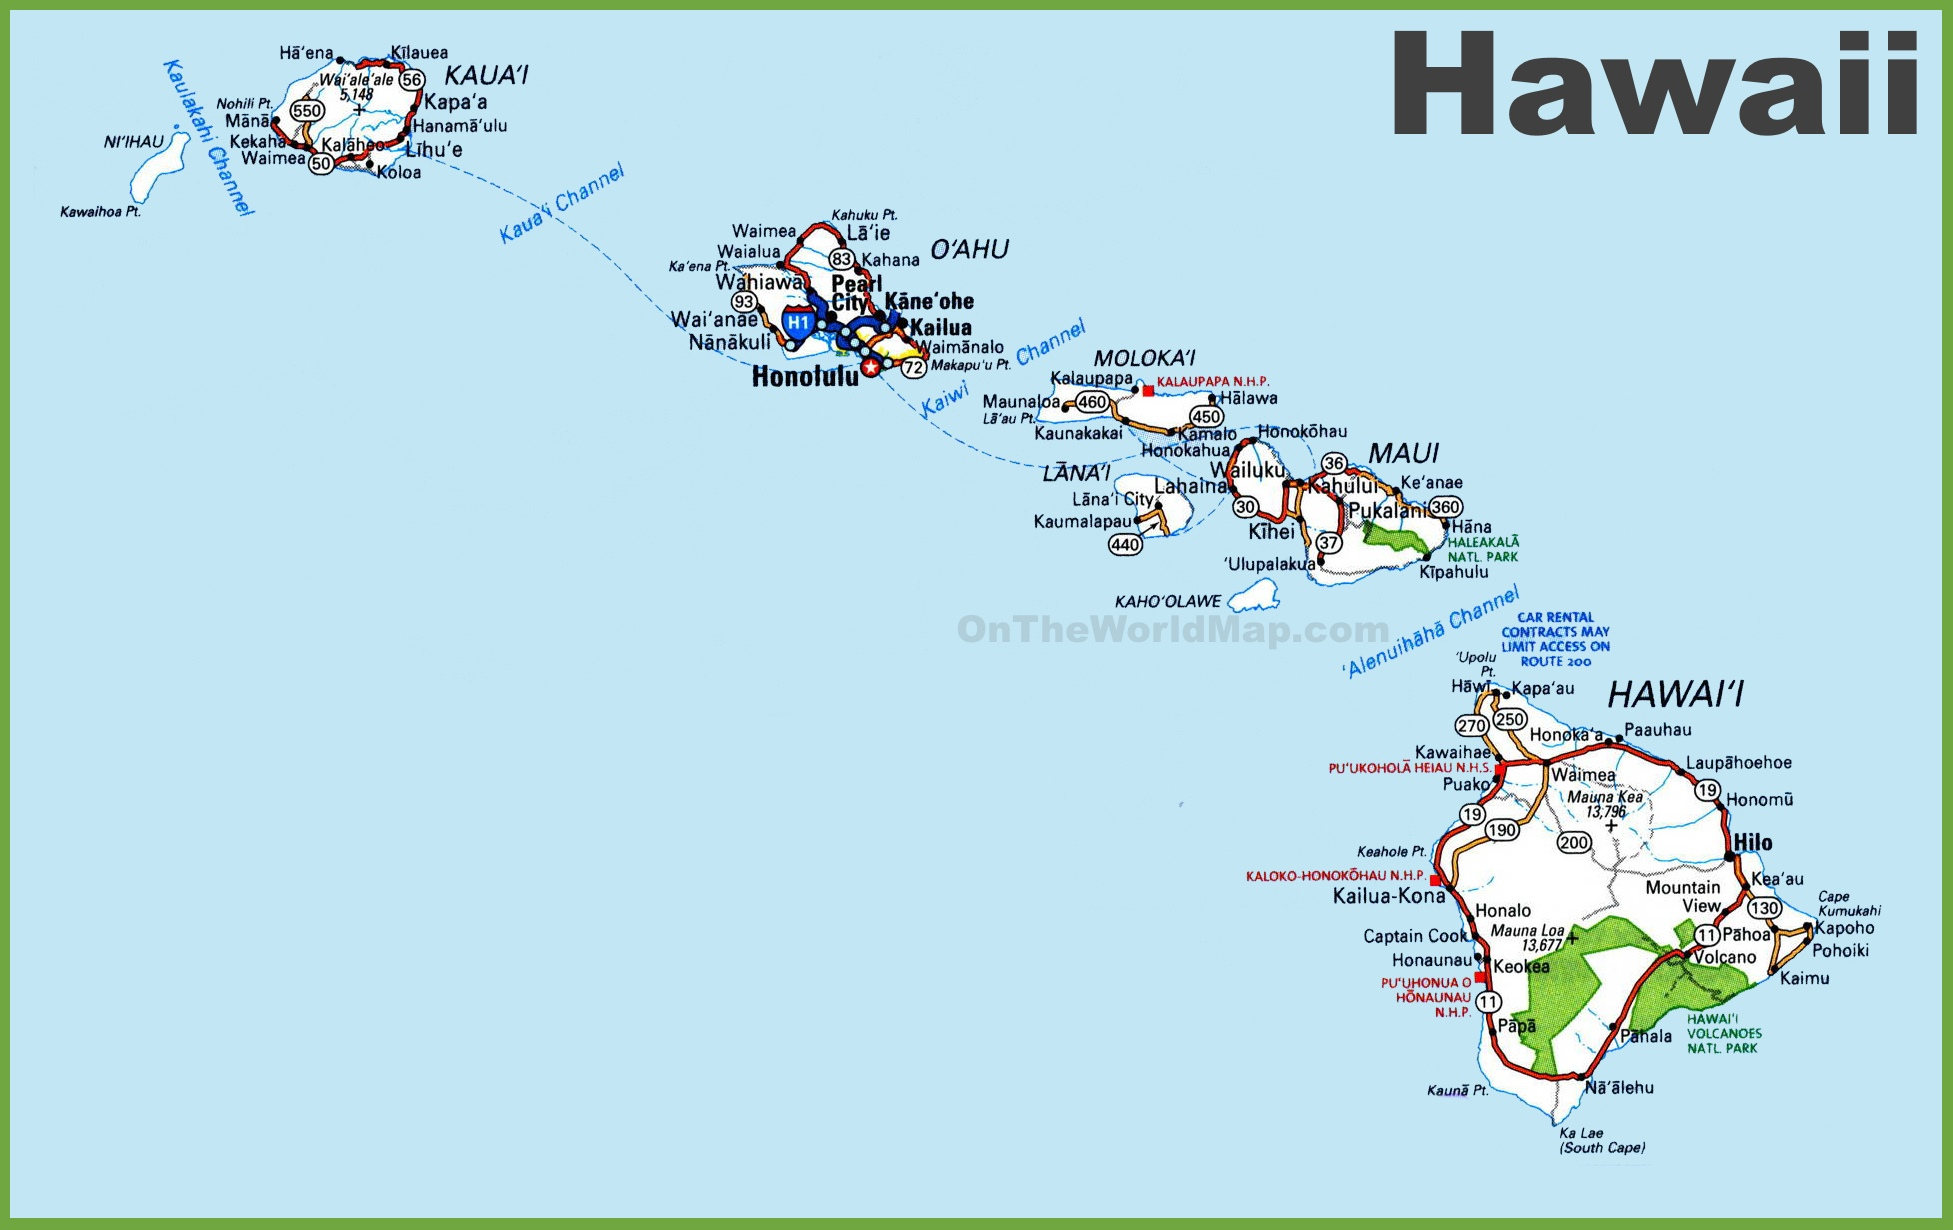 Hawaii Road Map Blank Map Map Of Hawaiian Islands And California - Map Of Hawaiian Islands And California